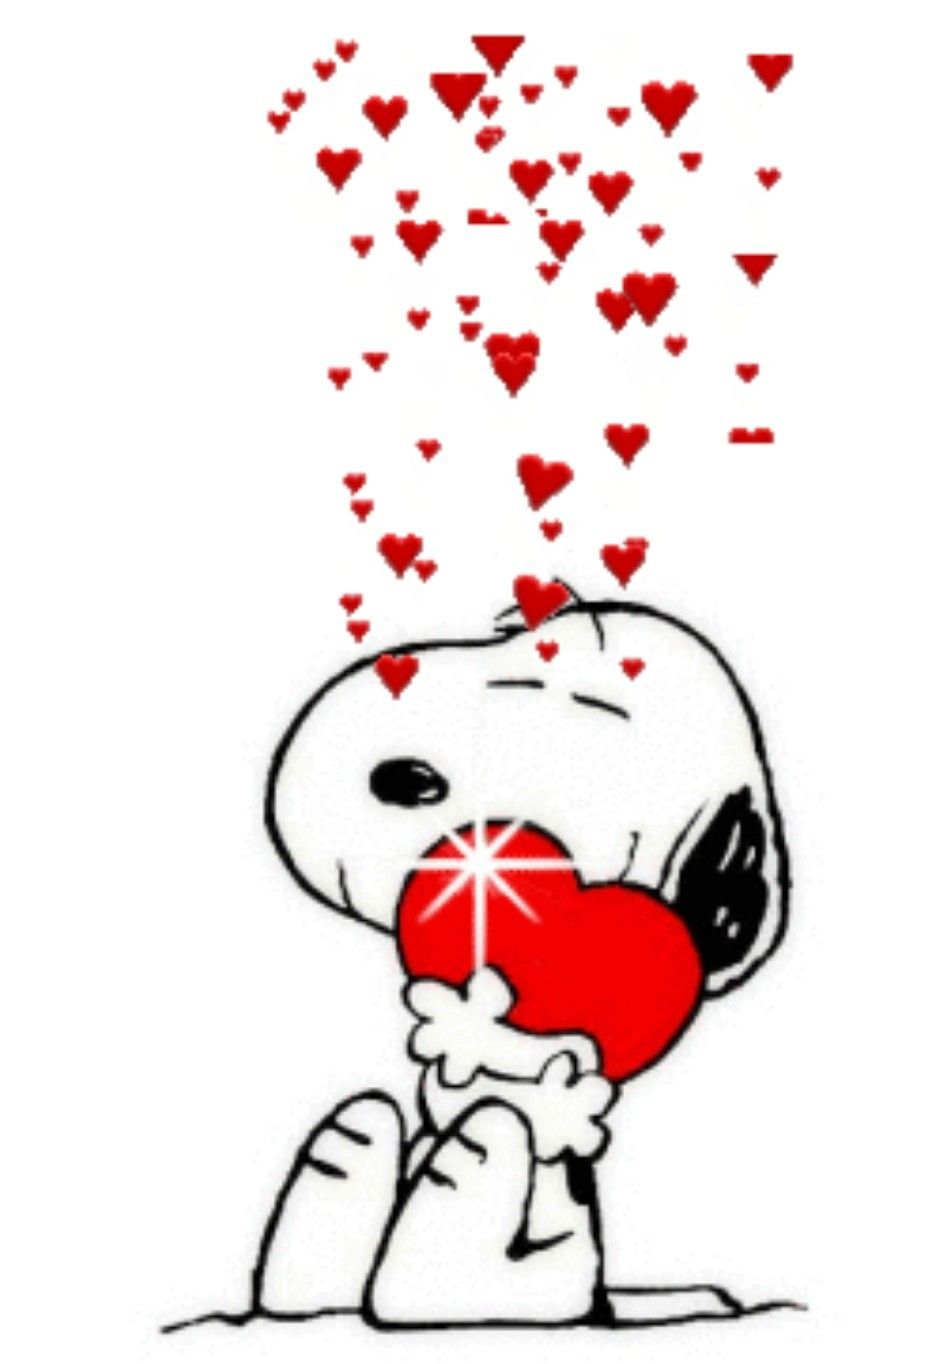 Pin By Jose Maria Pozo Dominguez On Buenos Snoopy Valentine Snoopy Love Snoopy Funny